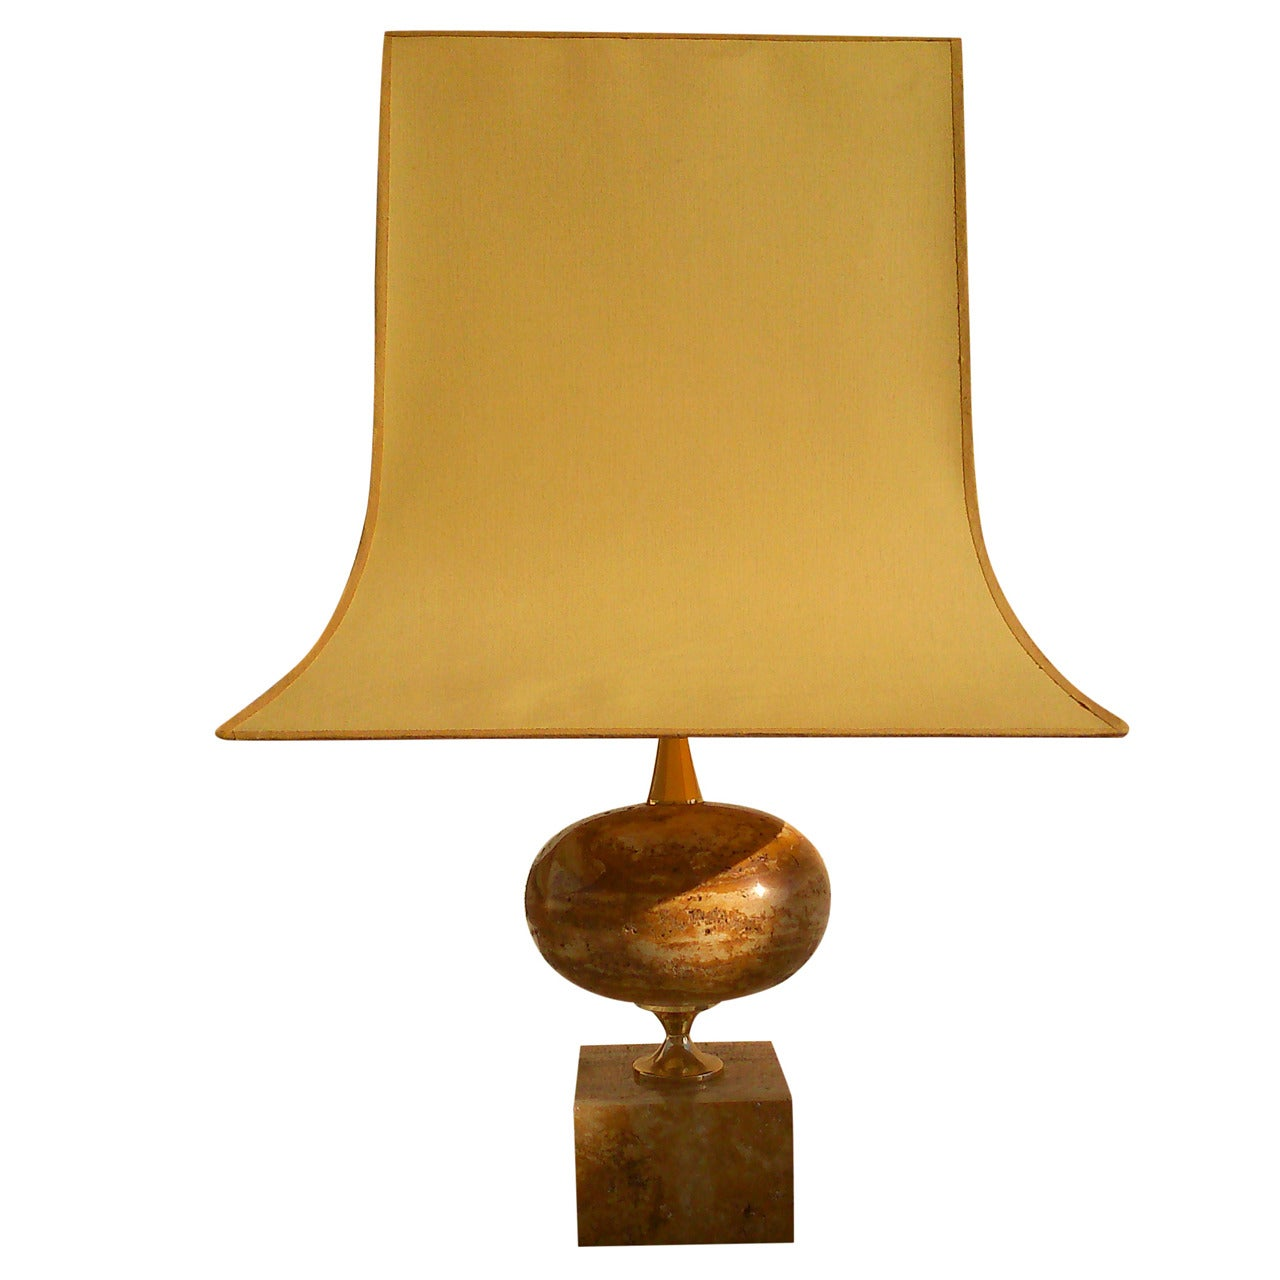 Oversized Maison Barbier Travertine And Brass Lamp - France 1970's - Ipso Facto